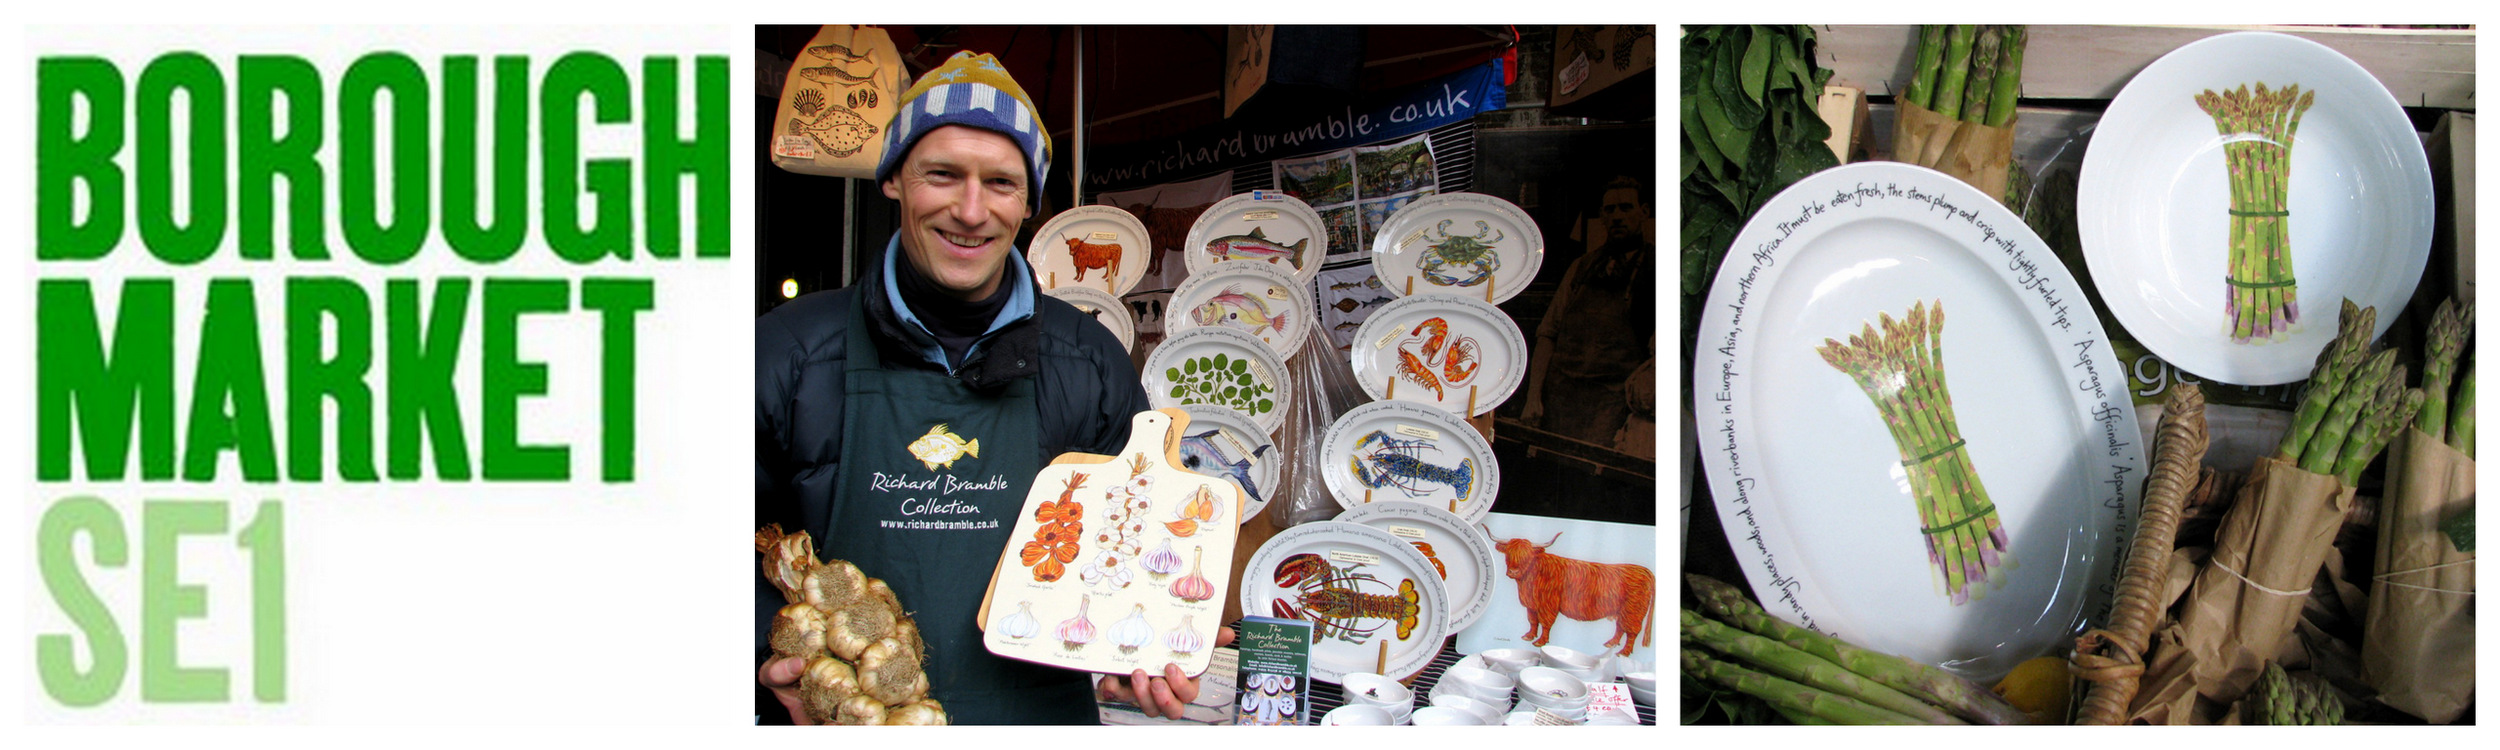 Richard Bramble at Borough Market